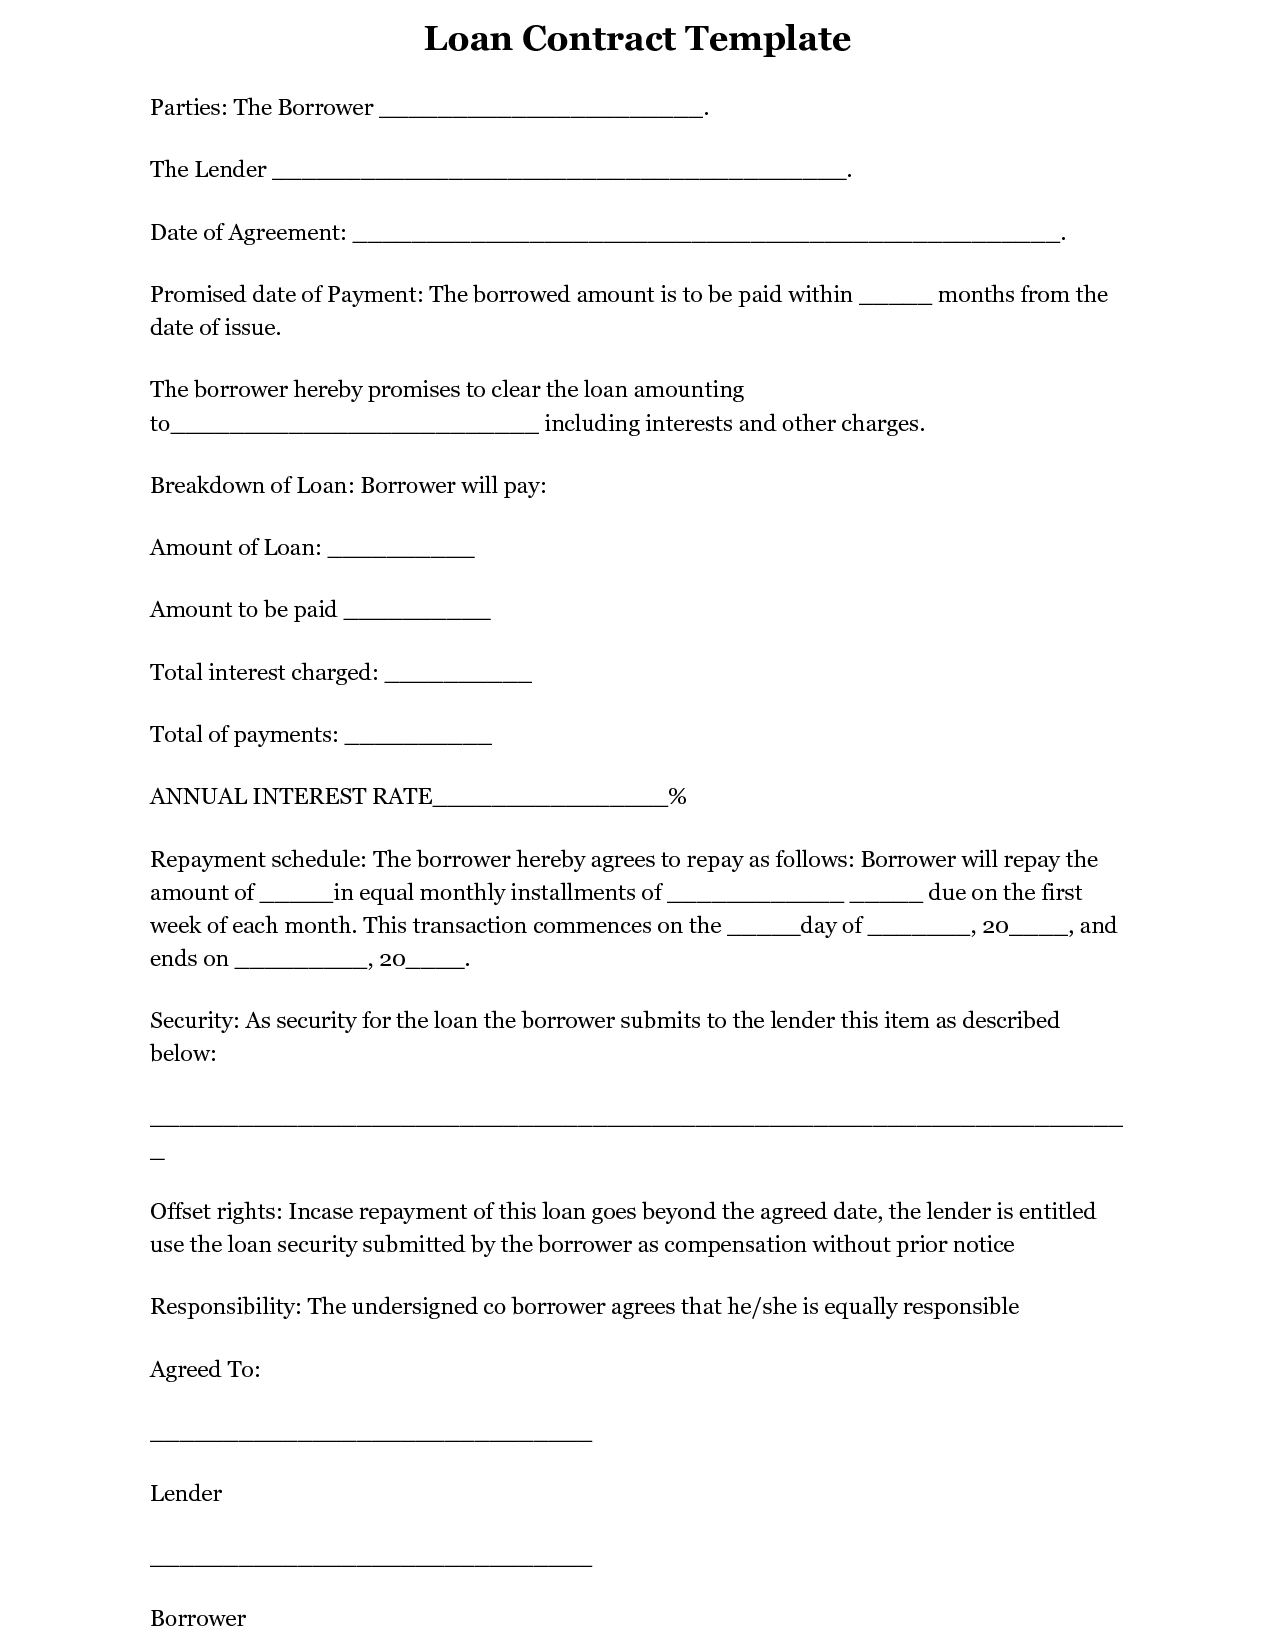 Beau Simple Loan Agreement Form Free Loan Contract Template 26 Examples In Word  Pdf Free, Commercial Loan Agreement Template Loan Agreement Form Template,  ...